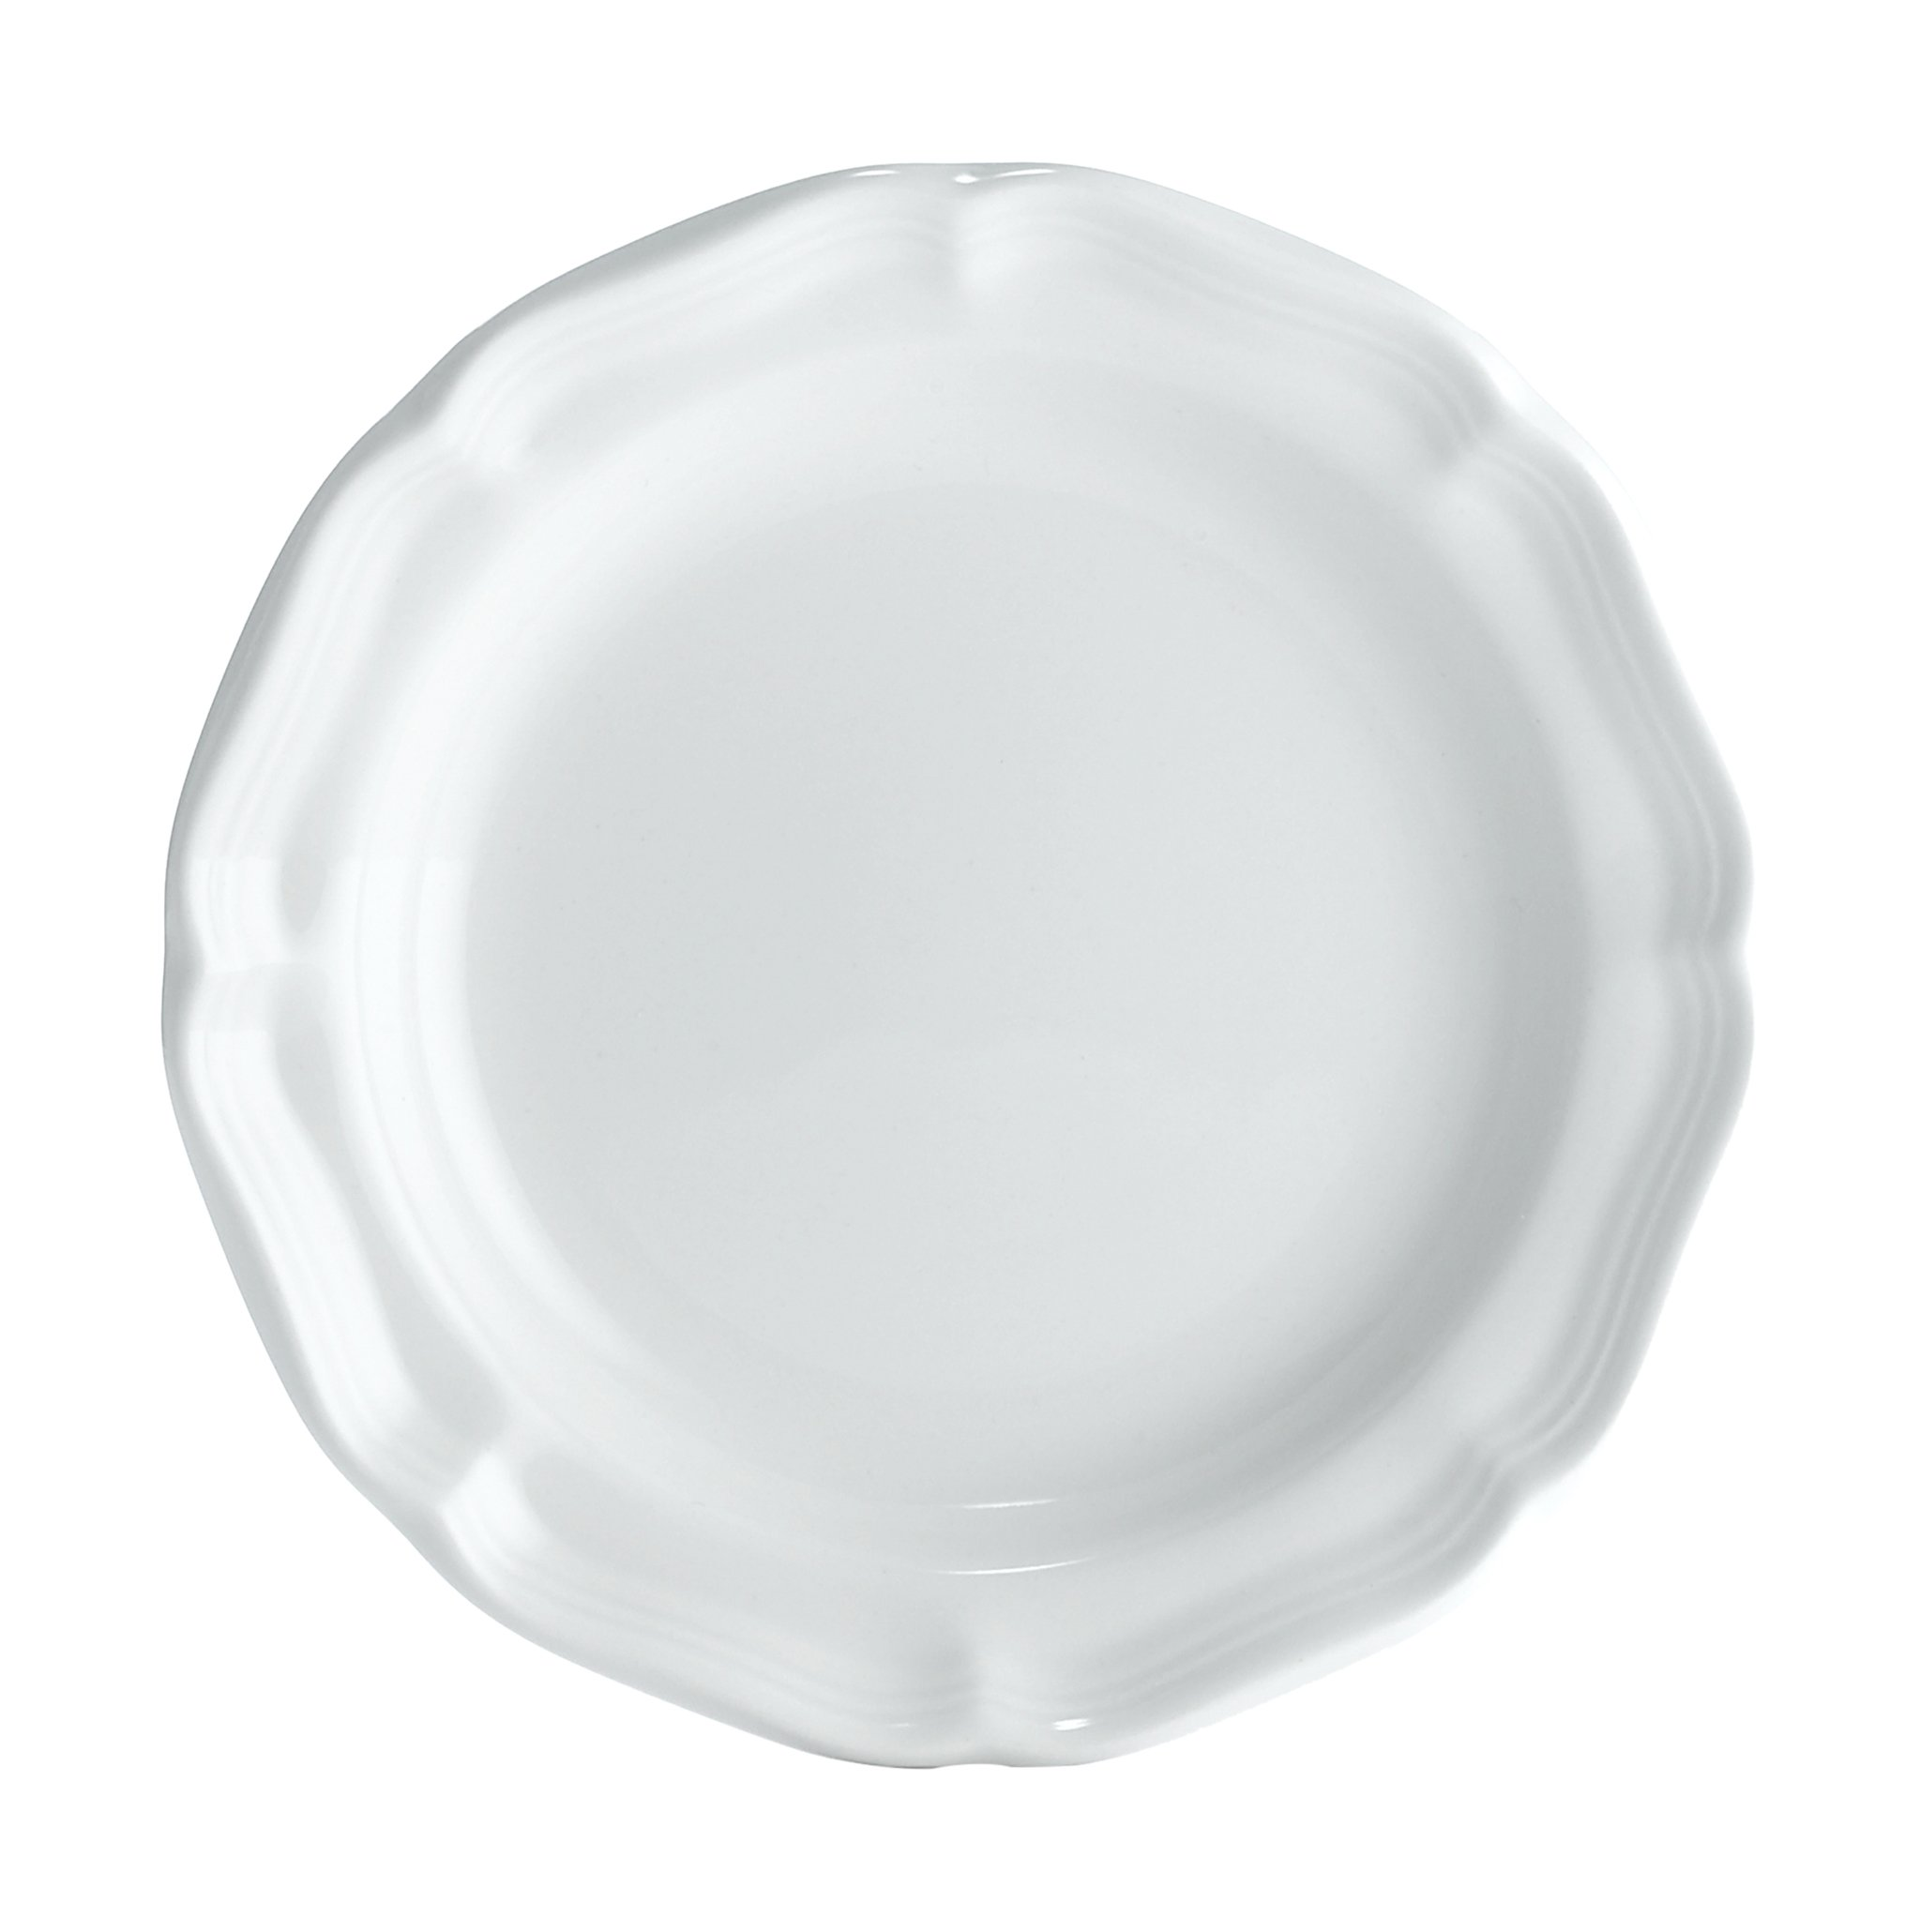 Mikasa French Countryside Bread and Butter Plate, 6.25-Inch